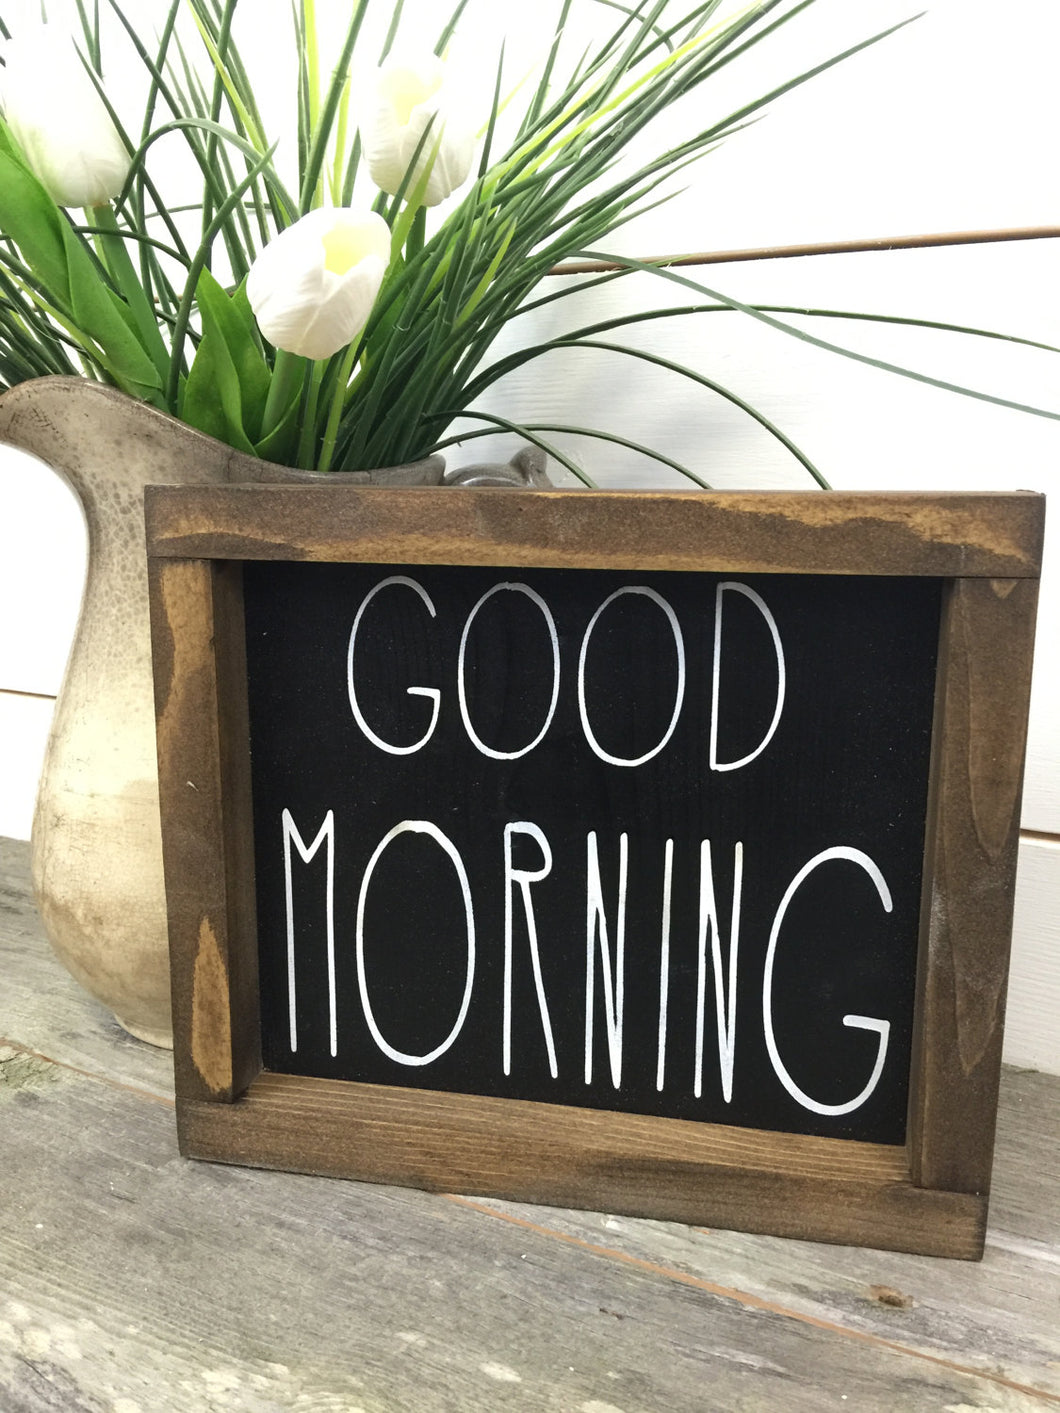 Good Morning Wood Sign - Rustic Wood Sign - Rustic Home Decor - Farmhouse Sign - Cottage Sign - Black Sign - Rustic Wood Wall Hanging